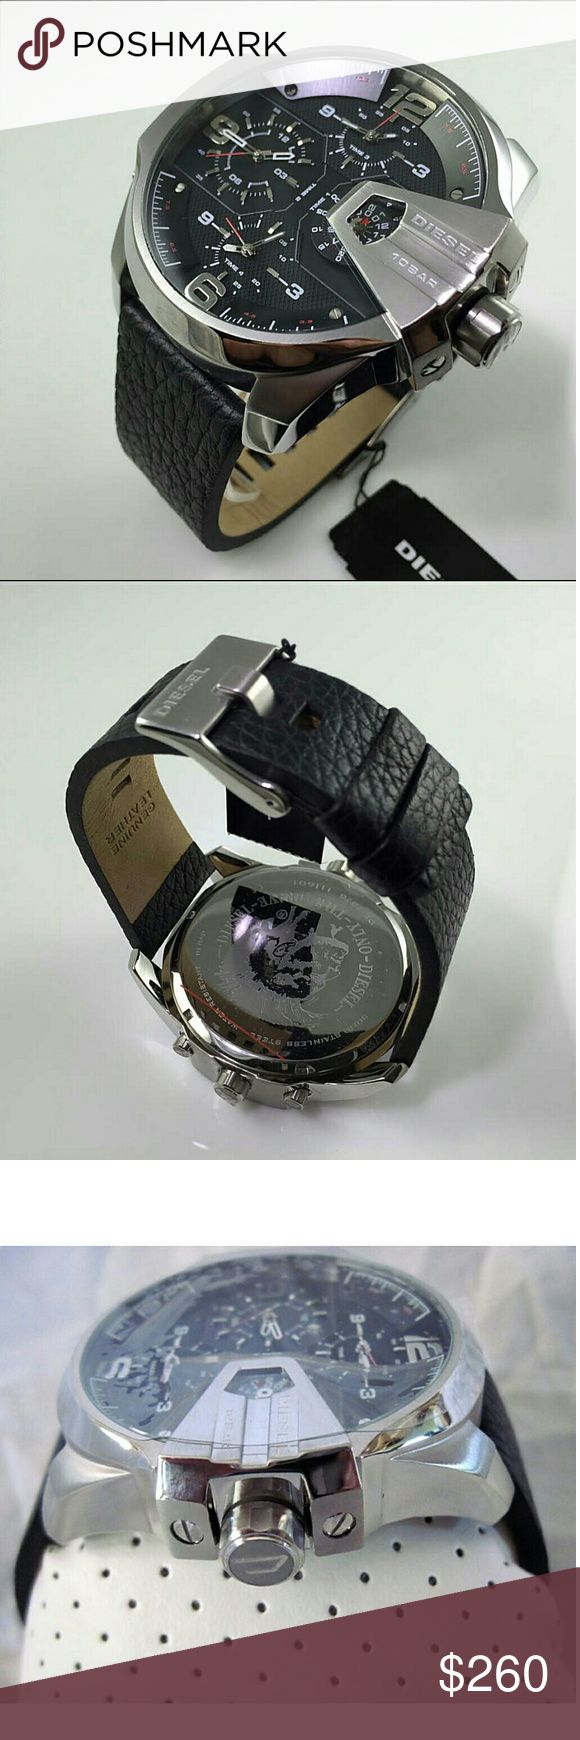 NWT Diesel men's oversized watch Brand new with tag Diesel Uber Oversized 4 Time Zone Men's ?Watch.?    Firm price firm price firm price?  $260.00  . AUTHENTIC WATCH?  . AUTHENTIC BOX?  . AUTHENTIC MANUAL?    SHIPPING?  PLEASE ALLOW 3-4 BUSINESS DAYS FOR ME TO SHIPPED IT OFF.I HAVE TO GET IT FROM MY STORE.   THANK YOU FOR YOUR UNDERSTANDING diesel Accessories Watches